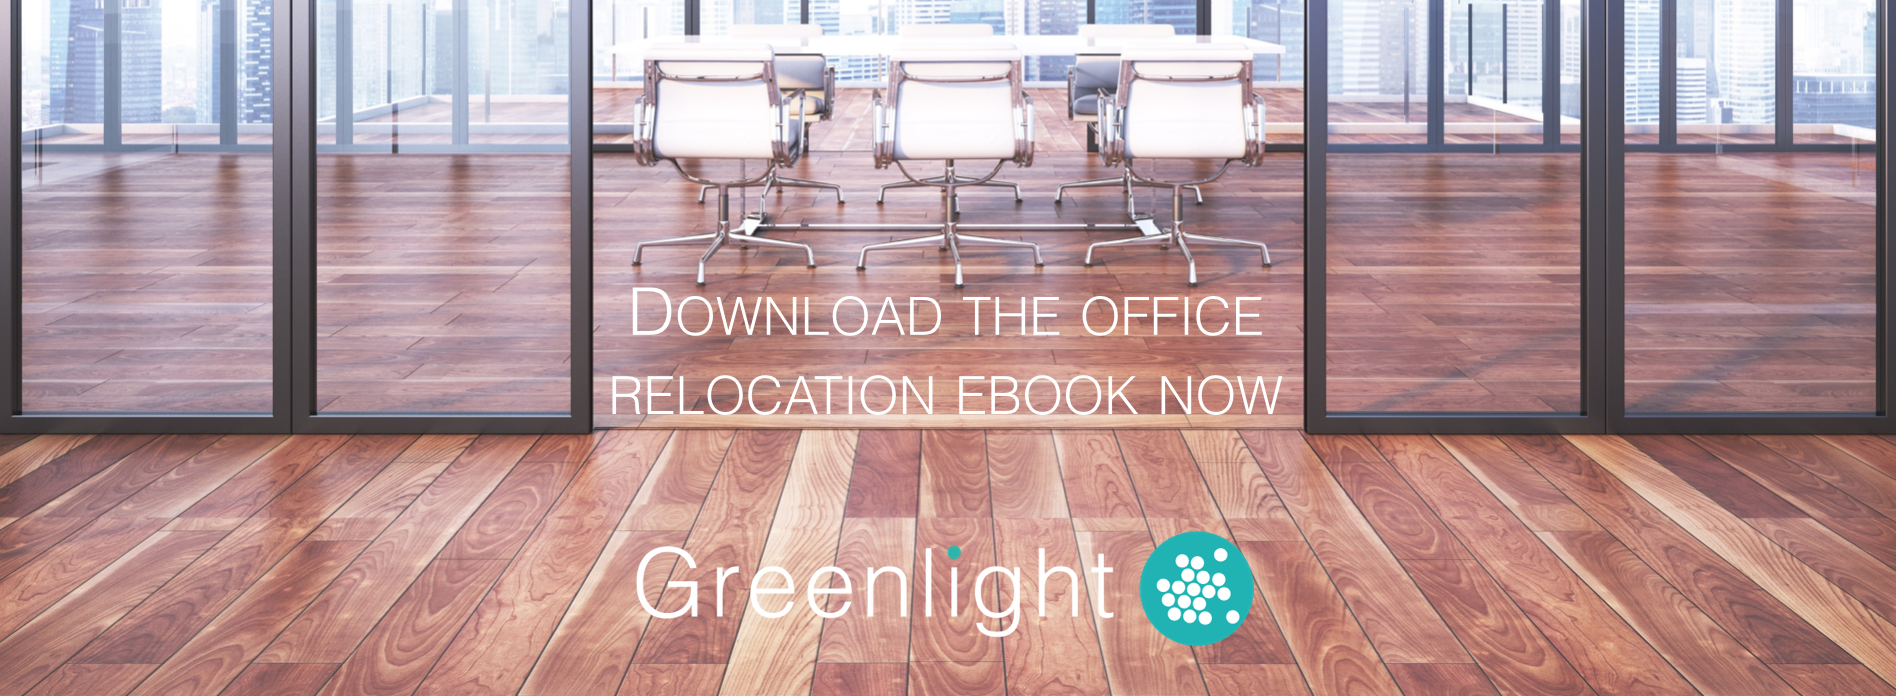 Office Relocation Ebook CTA | Greenlight | Jersey, Guernsey, Channel Islands